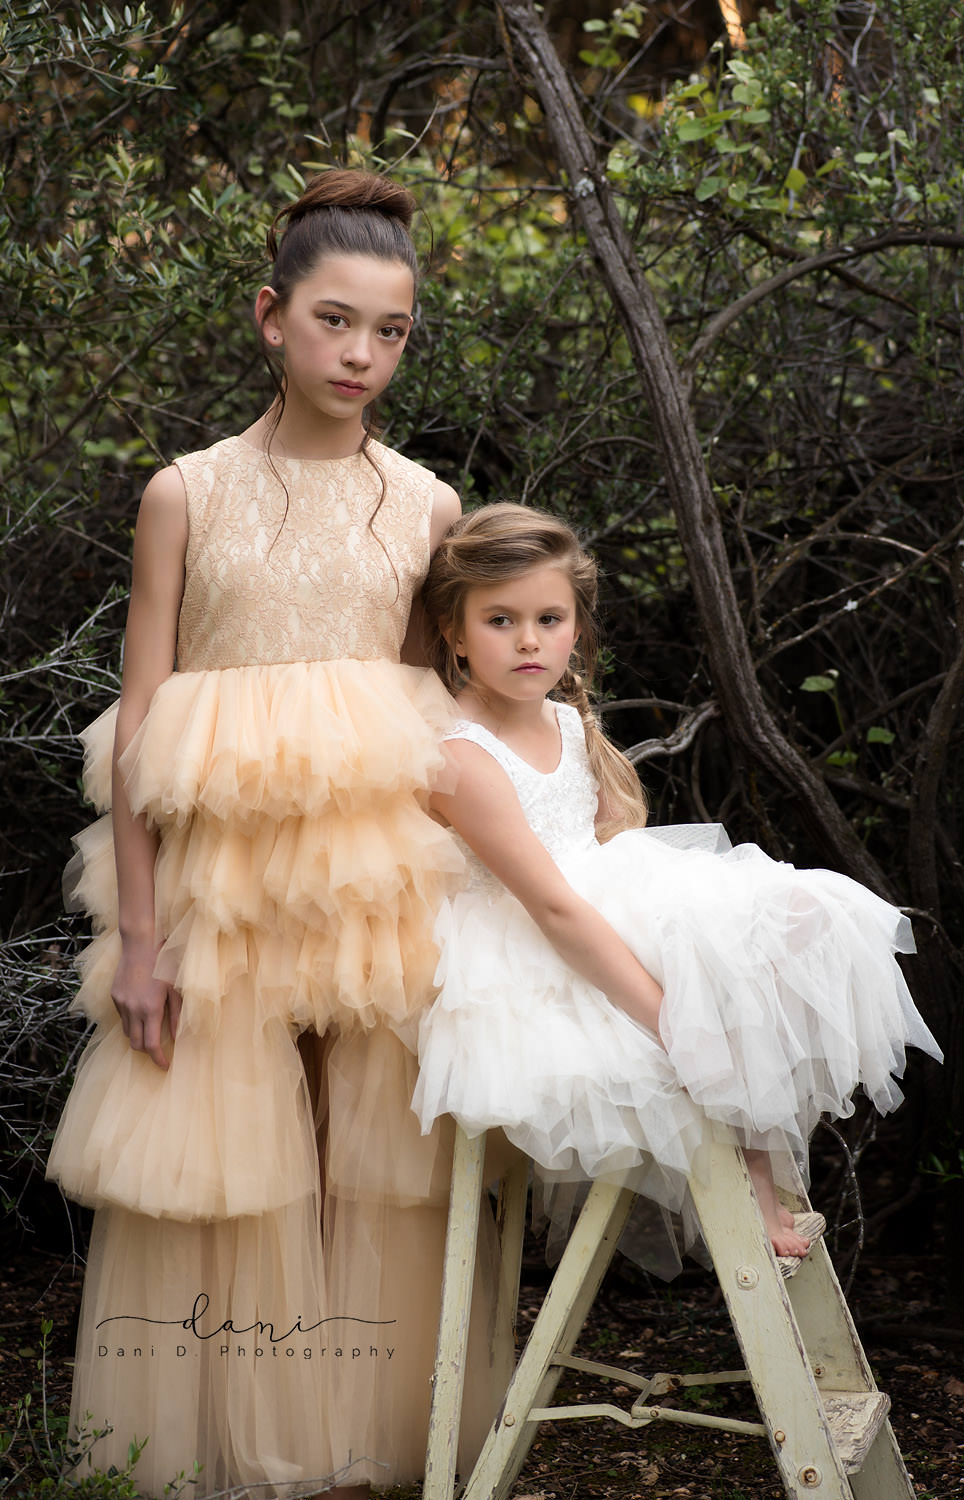 Isabella and Katiana Upton models - Northern California child and family photographer